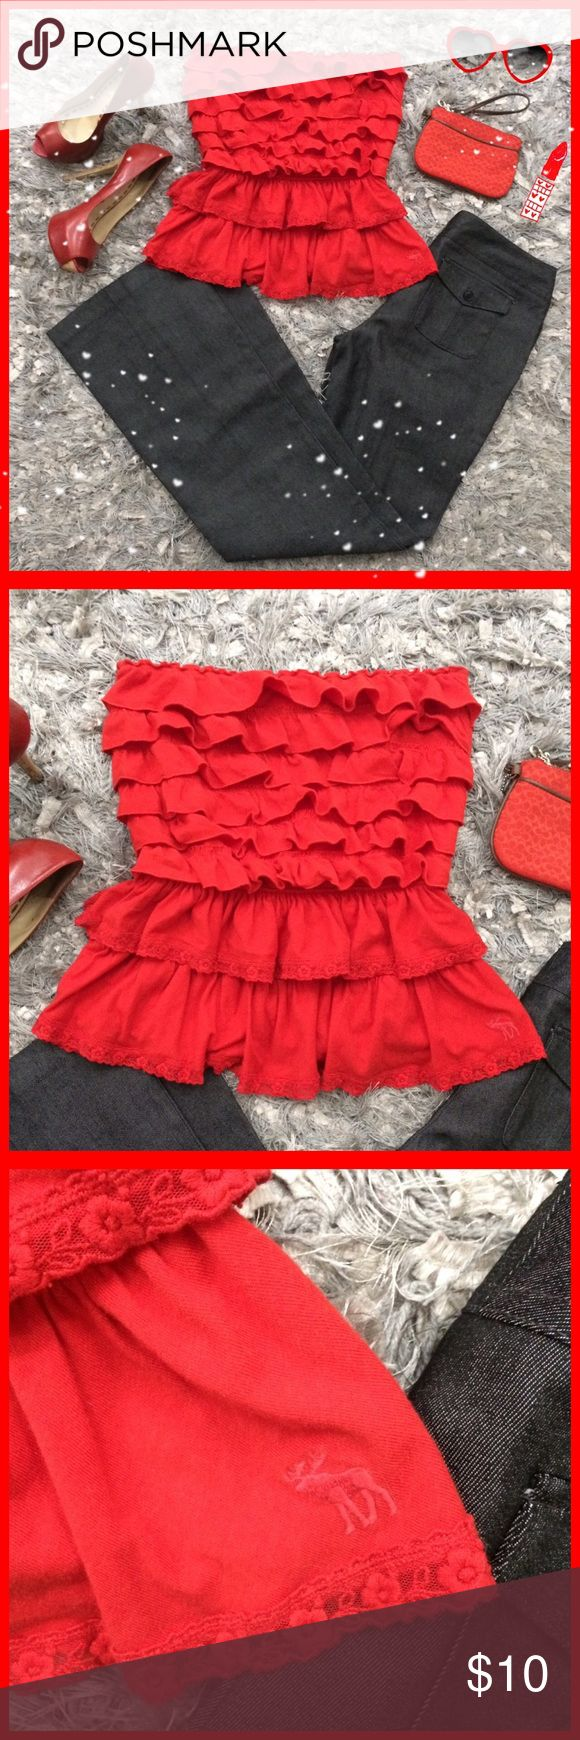 A&F ruffle tube top Beautiful A&F red tube top with lots of ruffle layers. Size M.  ✨Bundle and save✨ Abercrombie & Fitch Tops